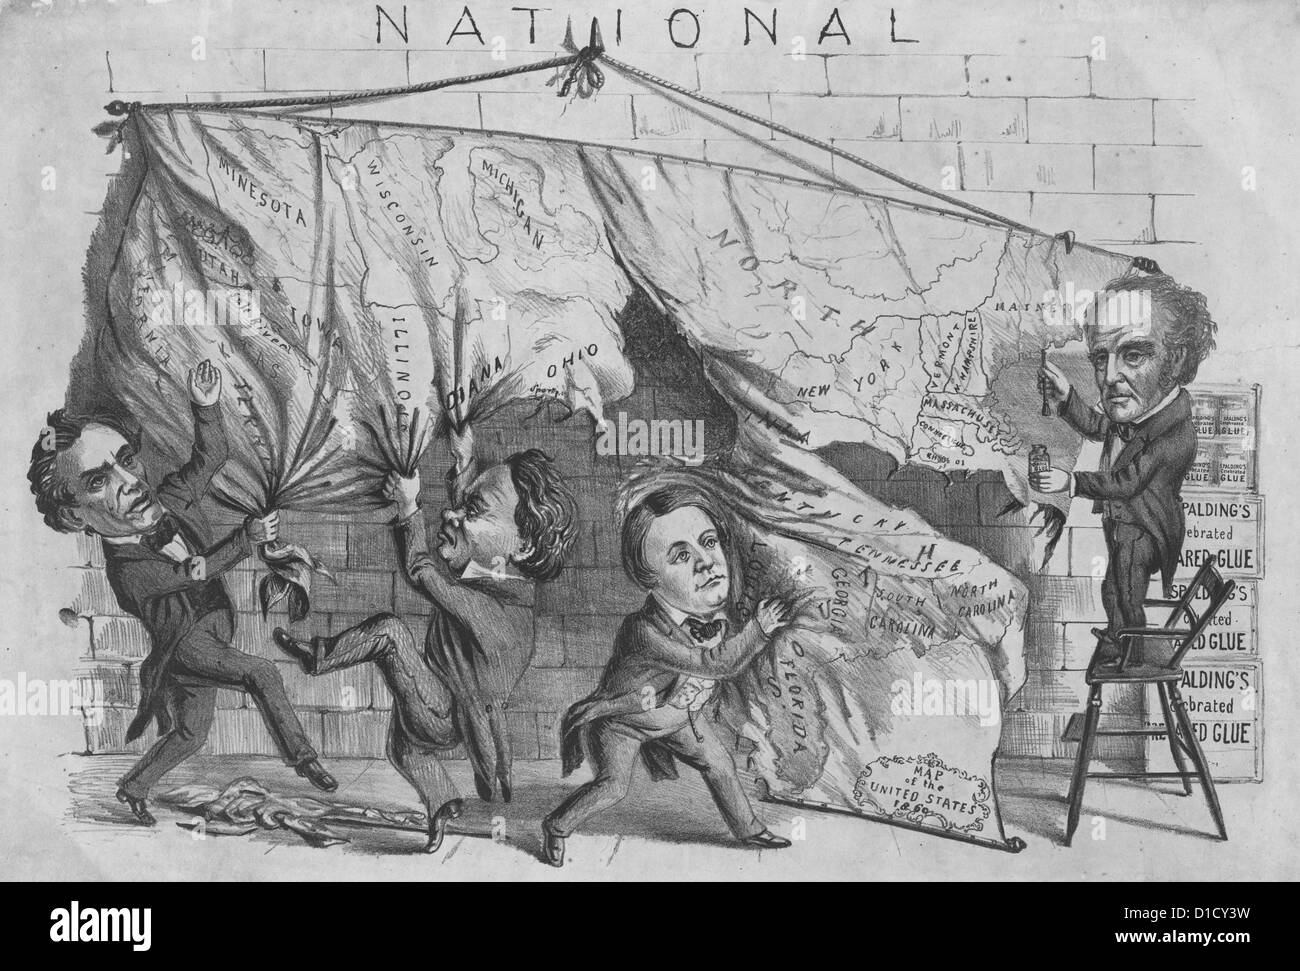 Editorial Cartoon Satirizing The 1860 Presidential Election In The